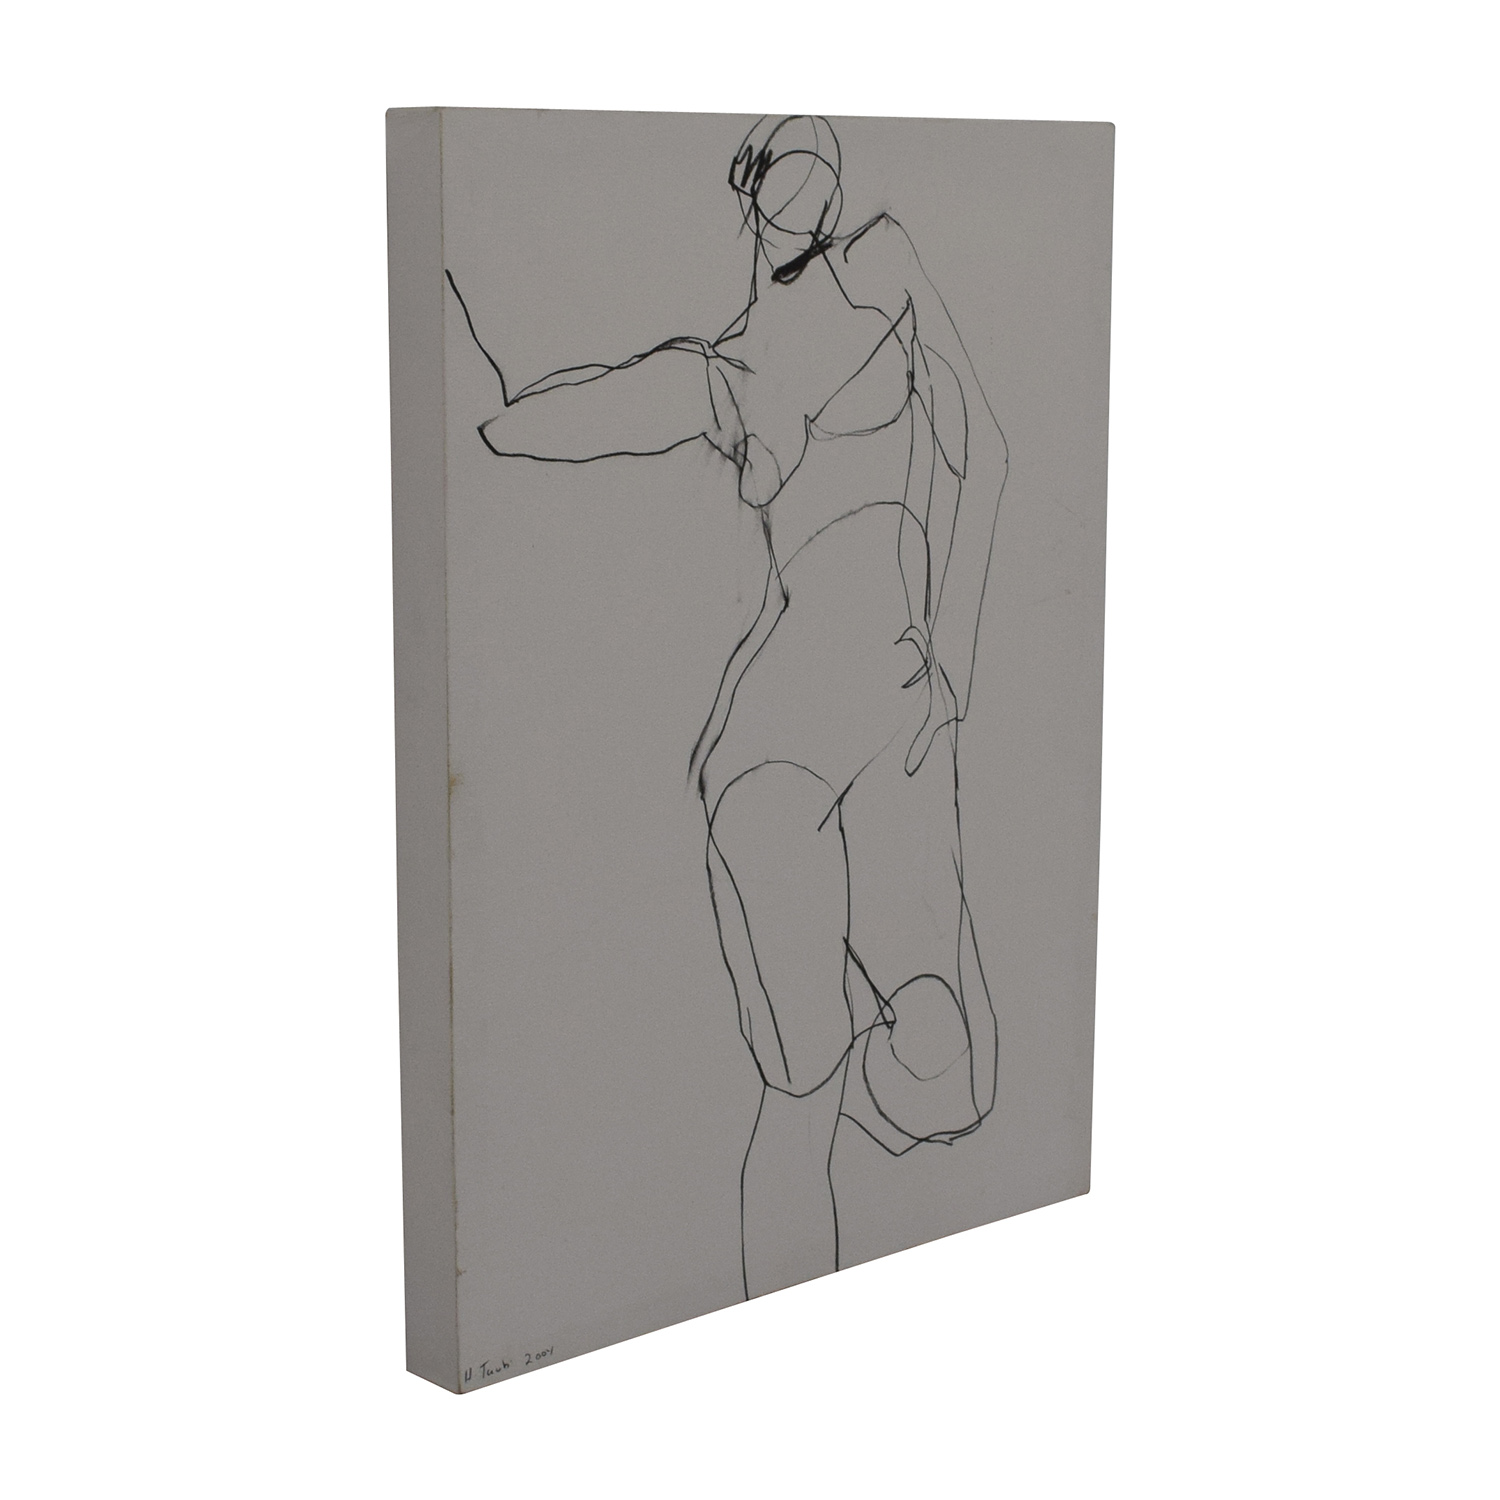 shop H. Taub H. Taub Life Drawing online